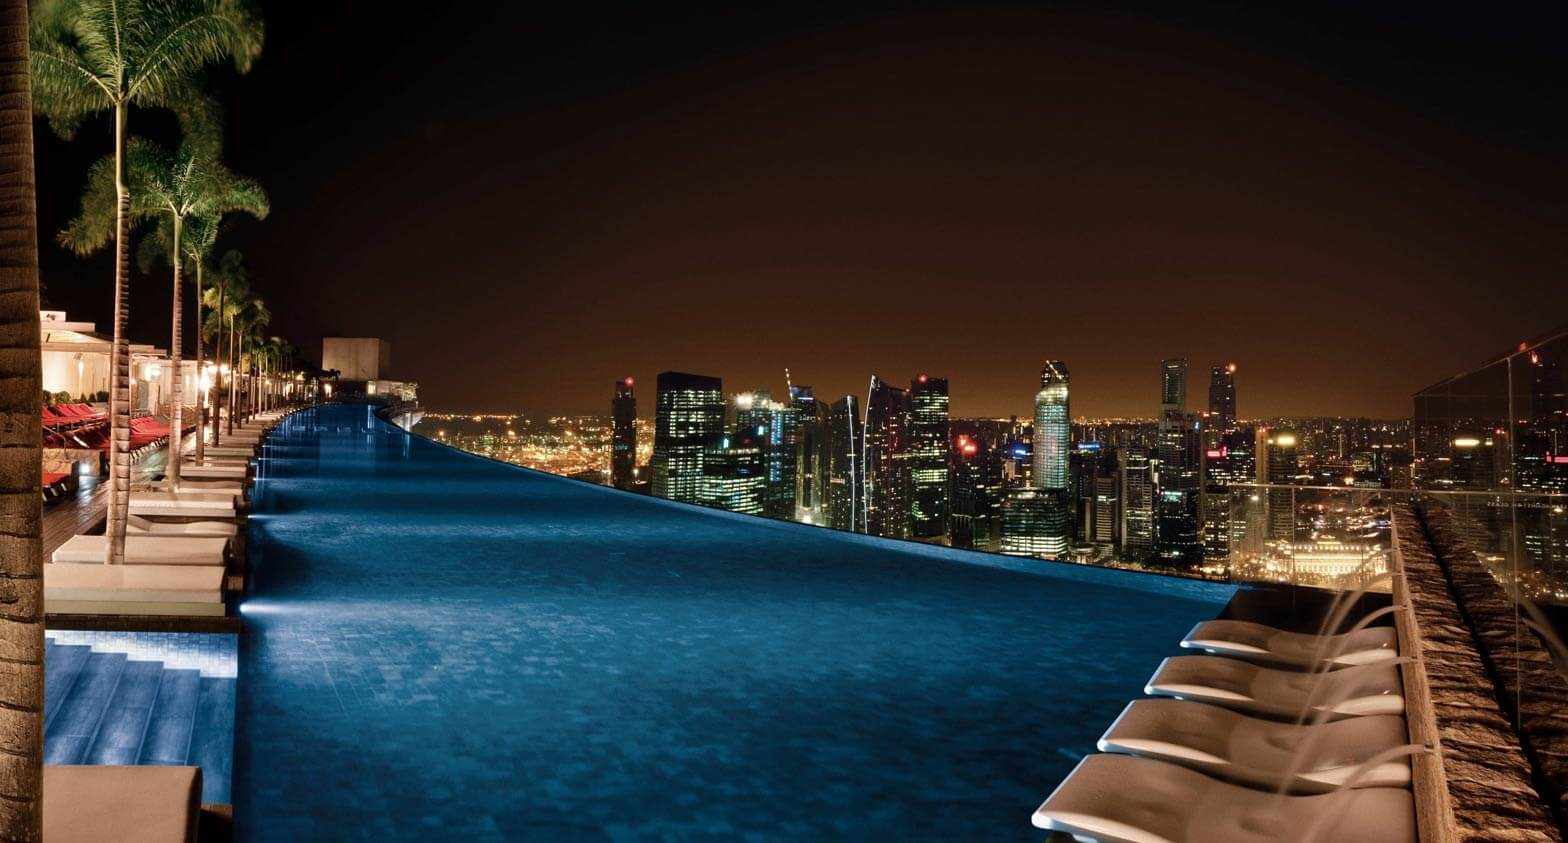 Infinity Pool Marina Bay Sands Swimming Pools In Singapore